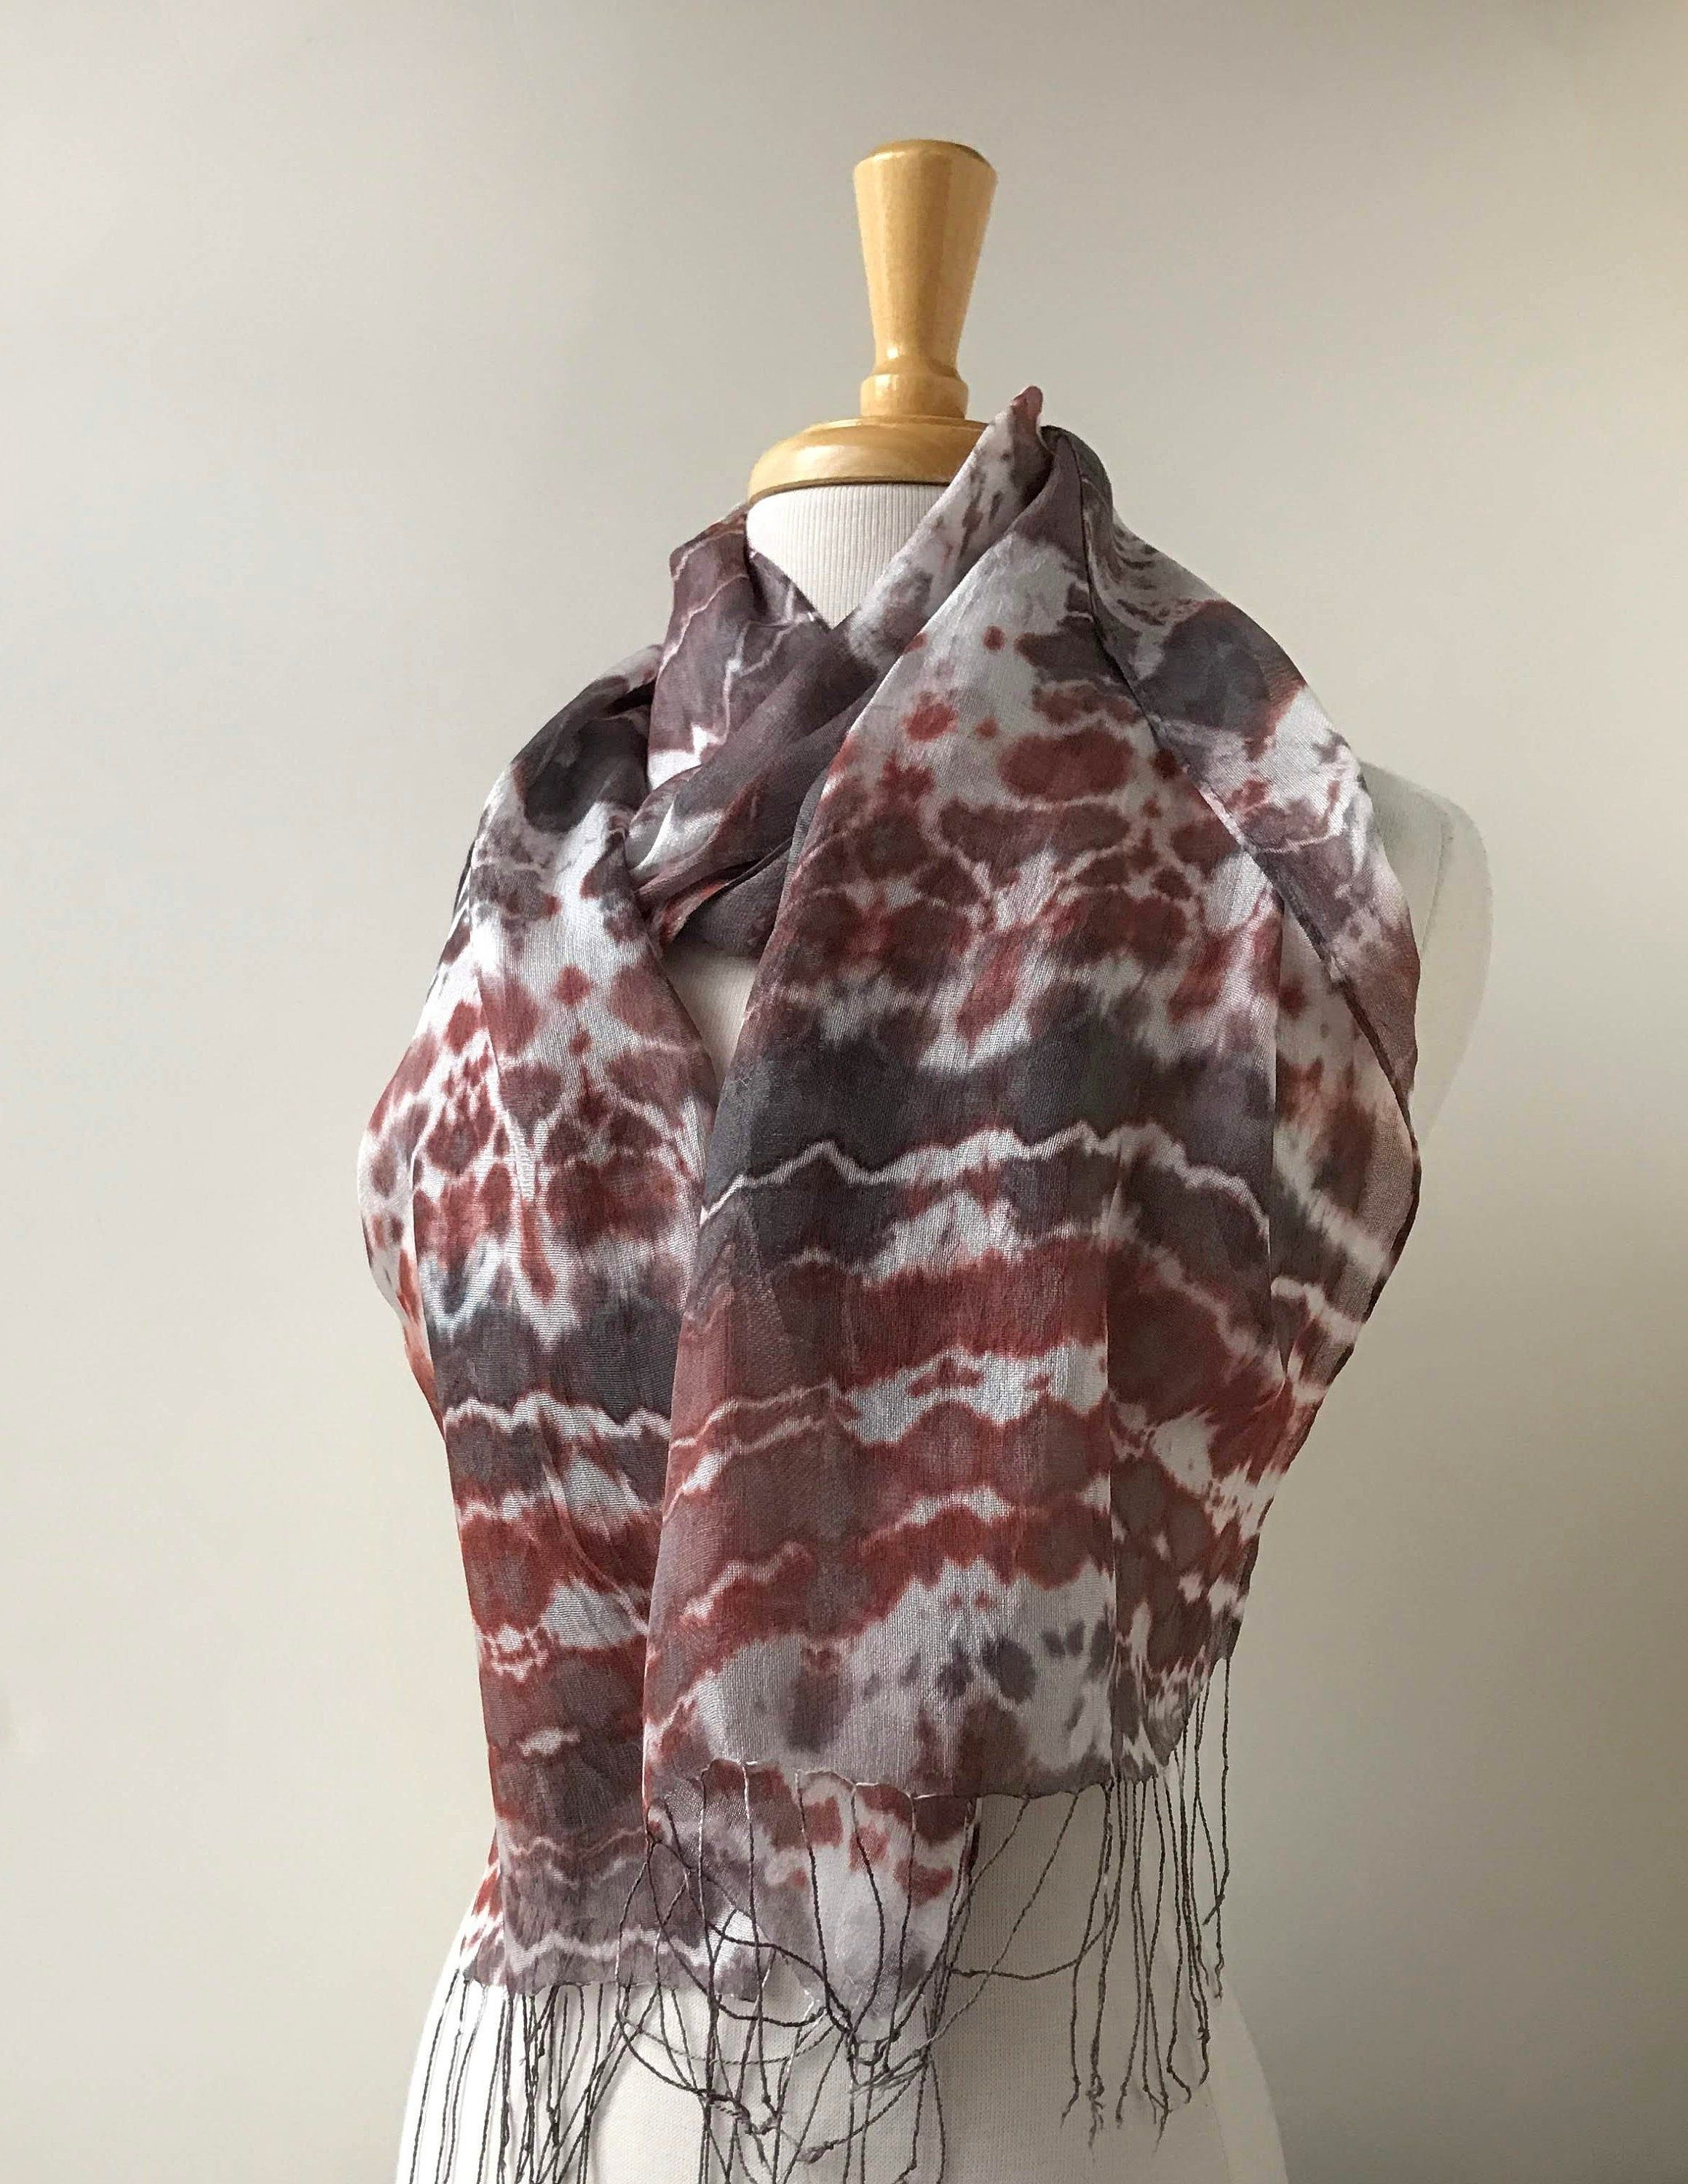 Naturally Dyed Shibori Scarf With Fringe 100 Silk Rust Burgundy Gray White Women Gift For Her Fashion Ti Shibori Scarf Pure Silk Scarf Naturally Dyed